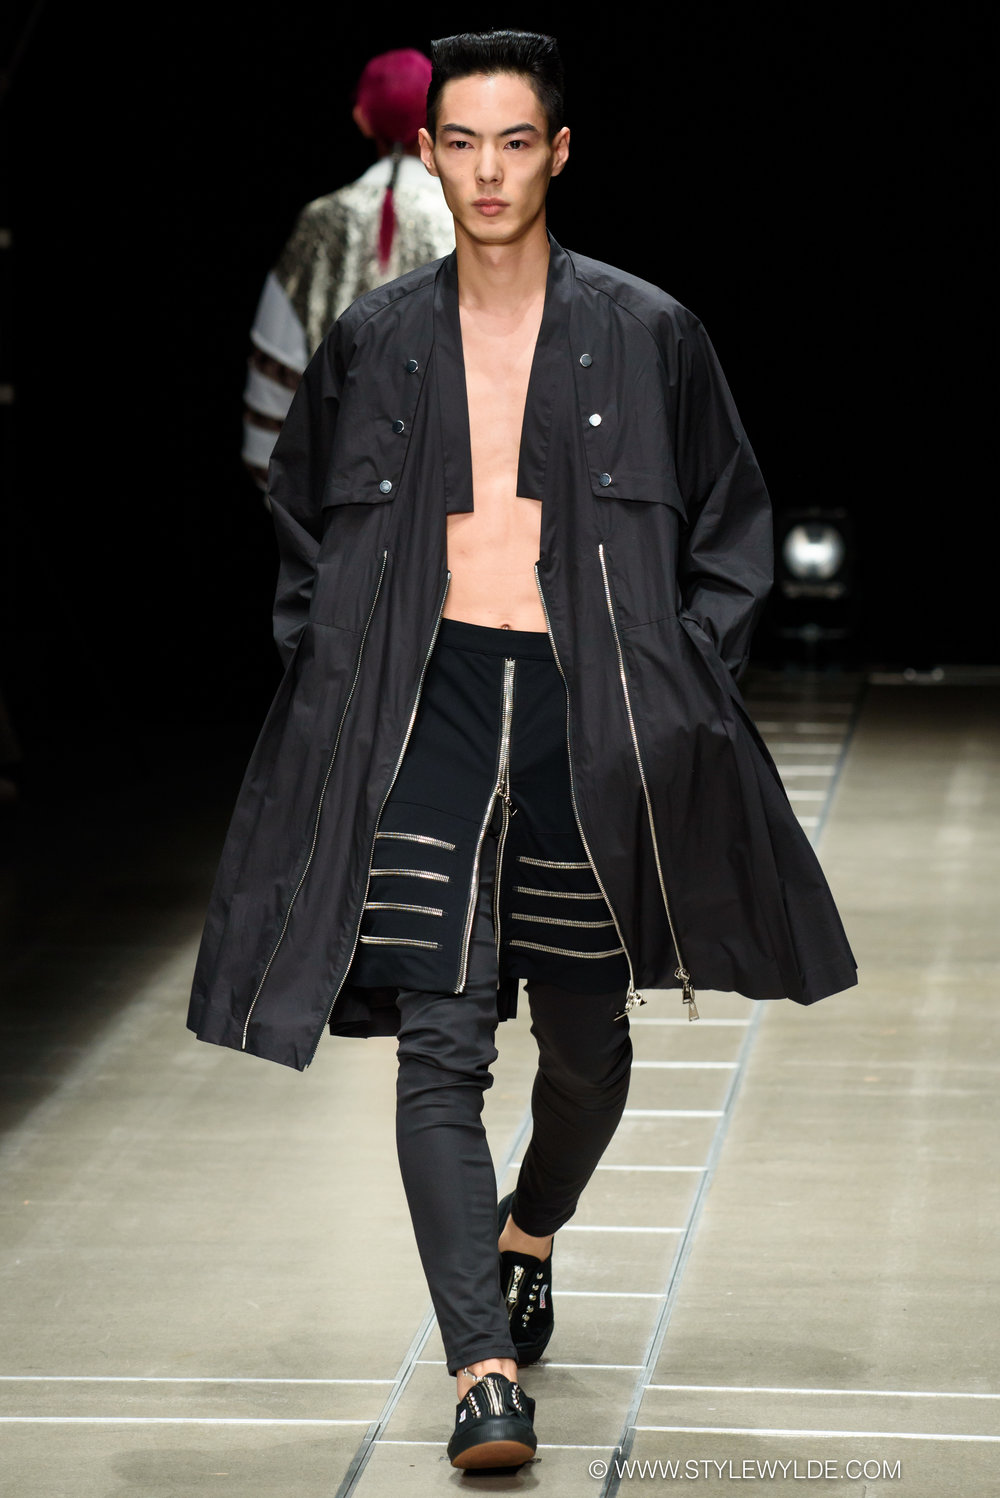 stylewylde_acuod_by_chanu_SS18_runway-8.jpg